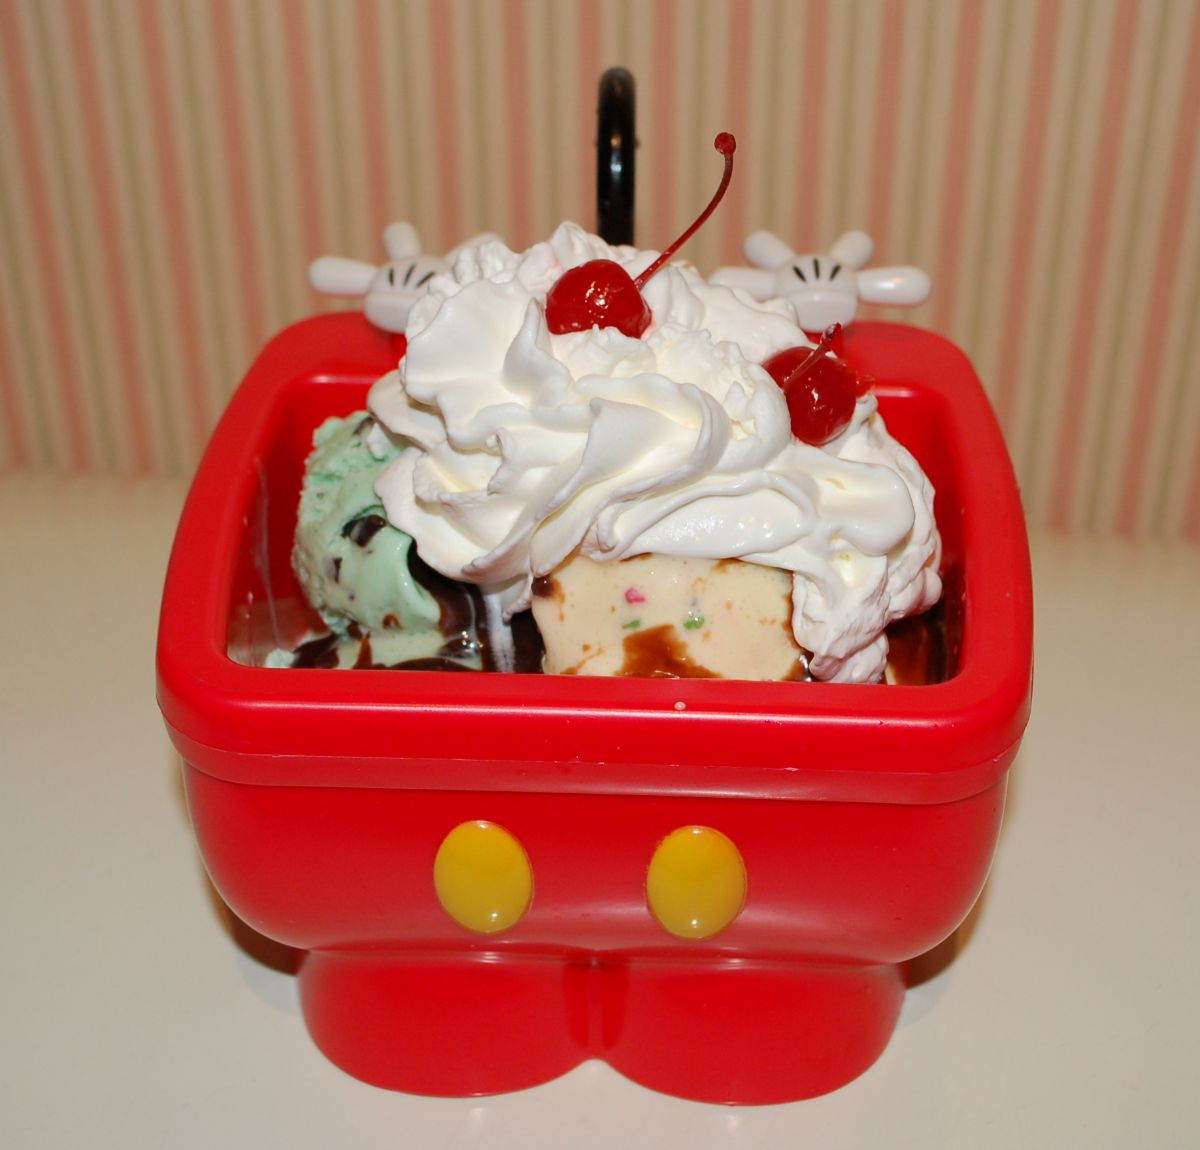 Everything But The Kitchen Sink Disney best disney world sweets - touringplans blog | touringplans